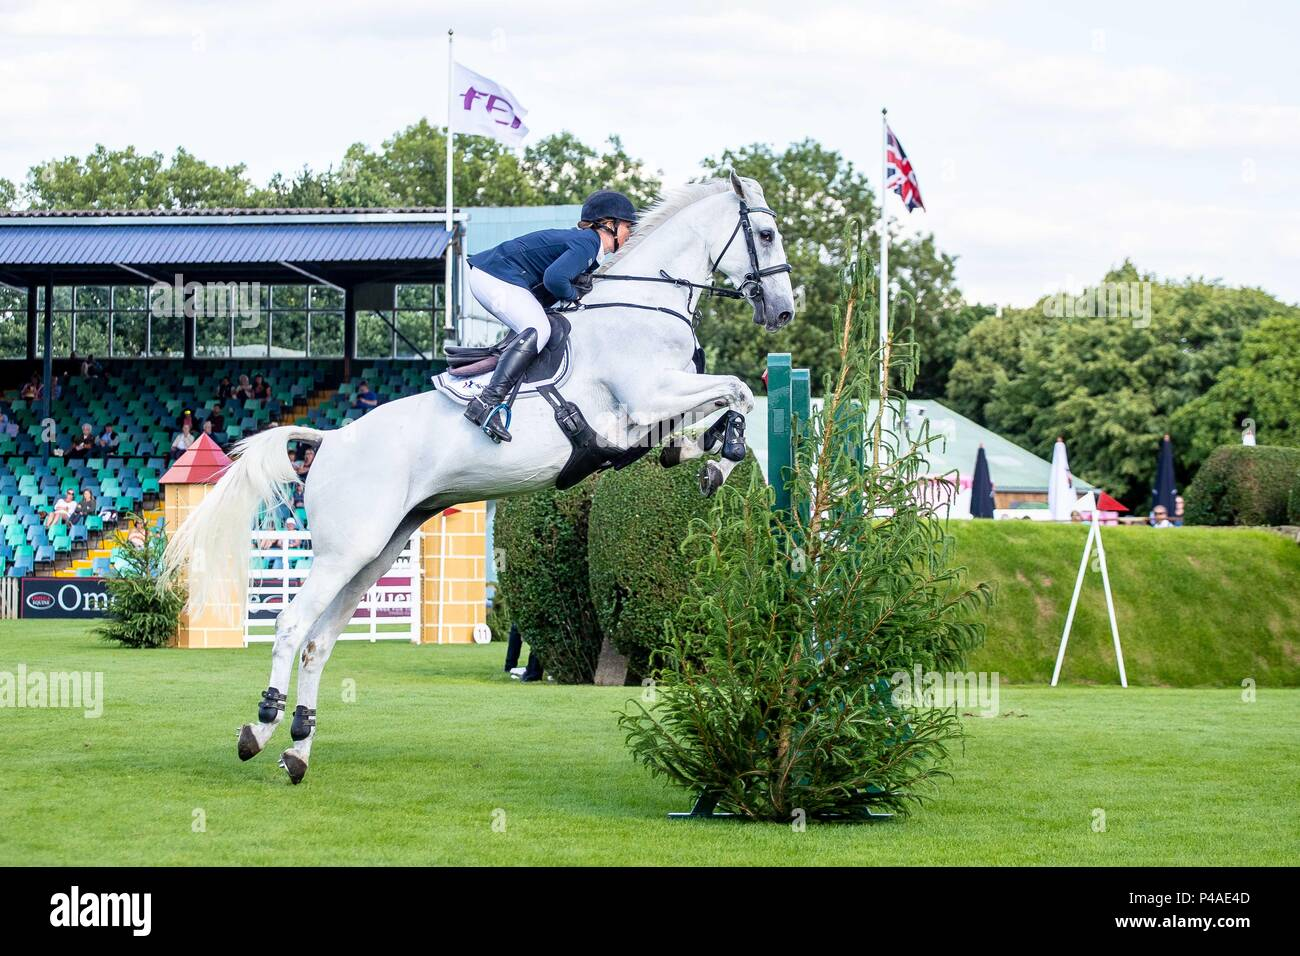 Sammie Jo Coffin riding Bellany ll. GBR. The Bunn Lesiure Tankard. CSI4*. The Al Shira'aa Hickstead Derby Meeting. Showjumping. The All England Jumping Course. Hickstead. West Sussex. UK. Day 2. 21/06/2018. - Stock Image